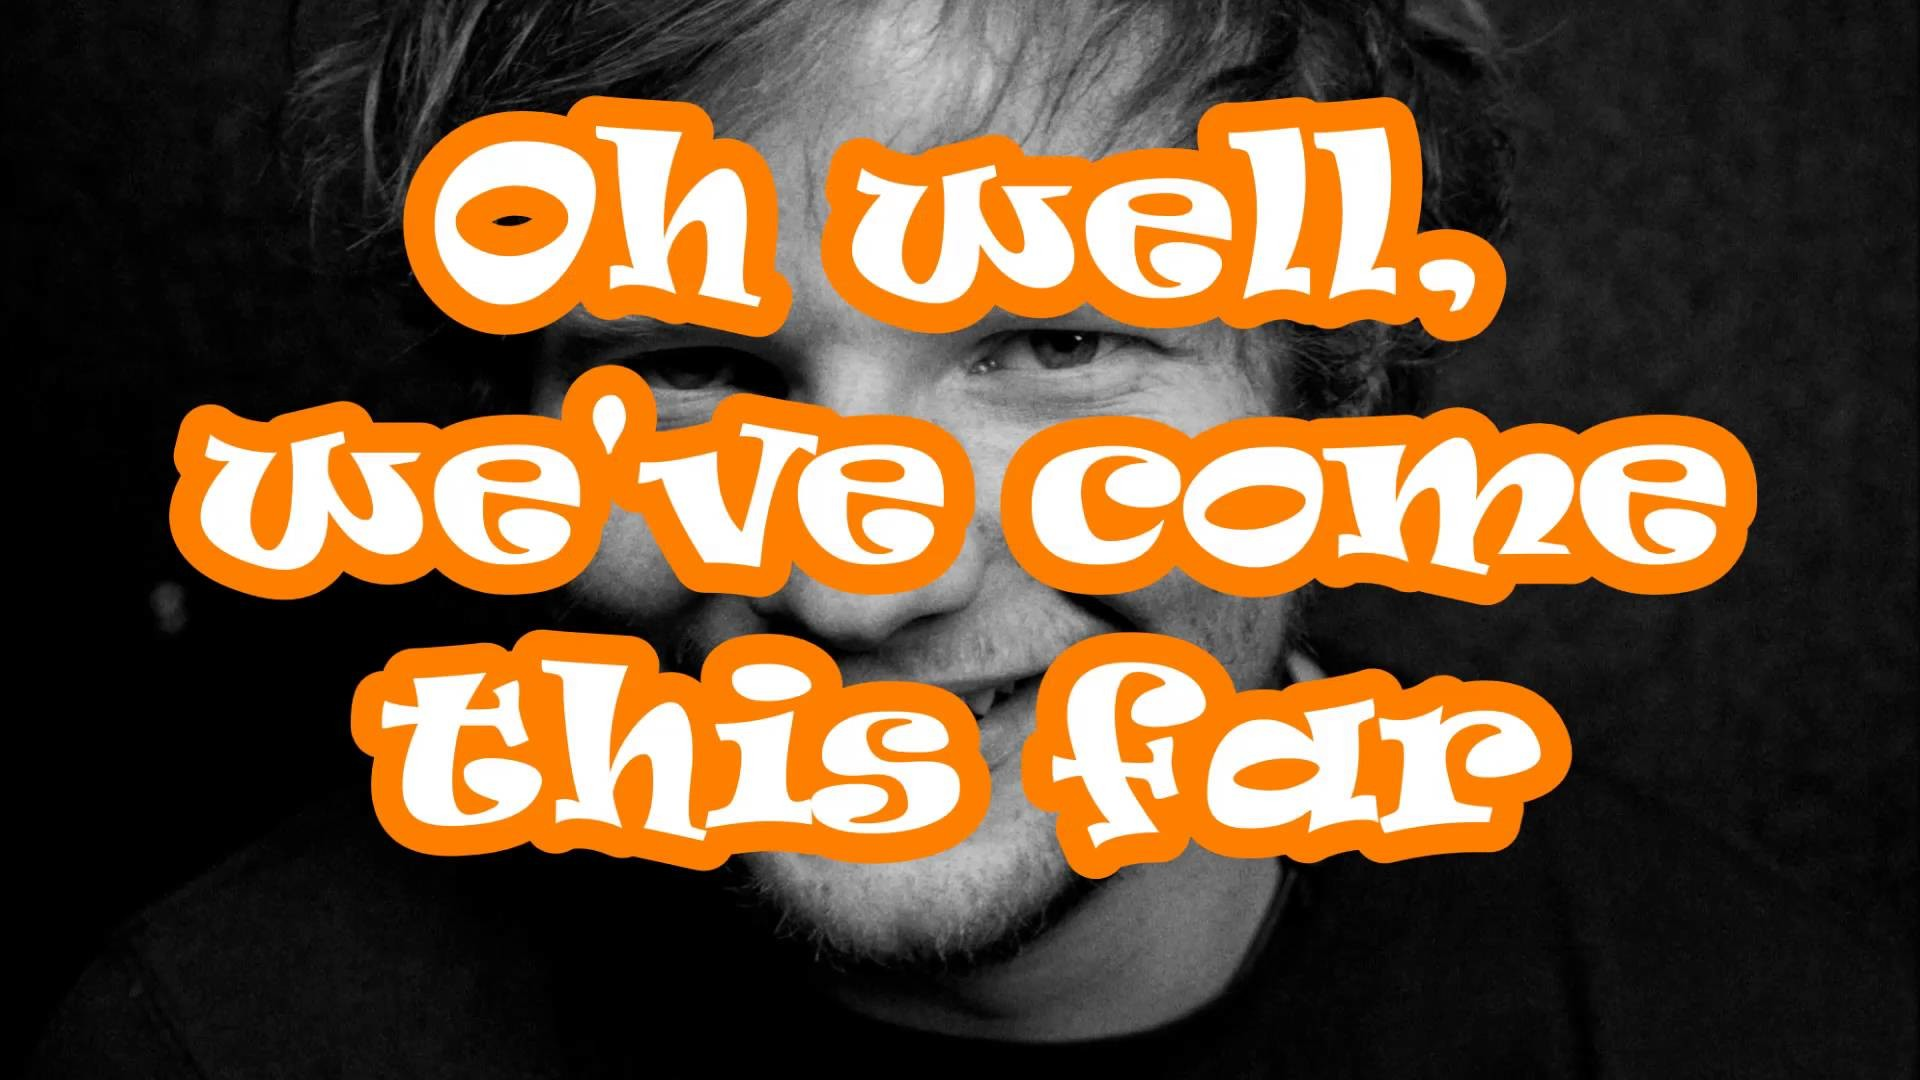 Addicted Ed Sheeran lyrics